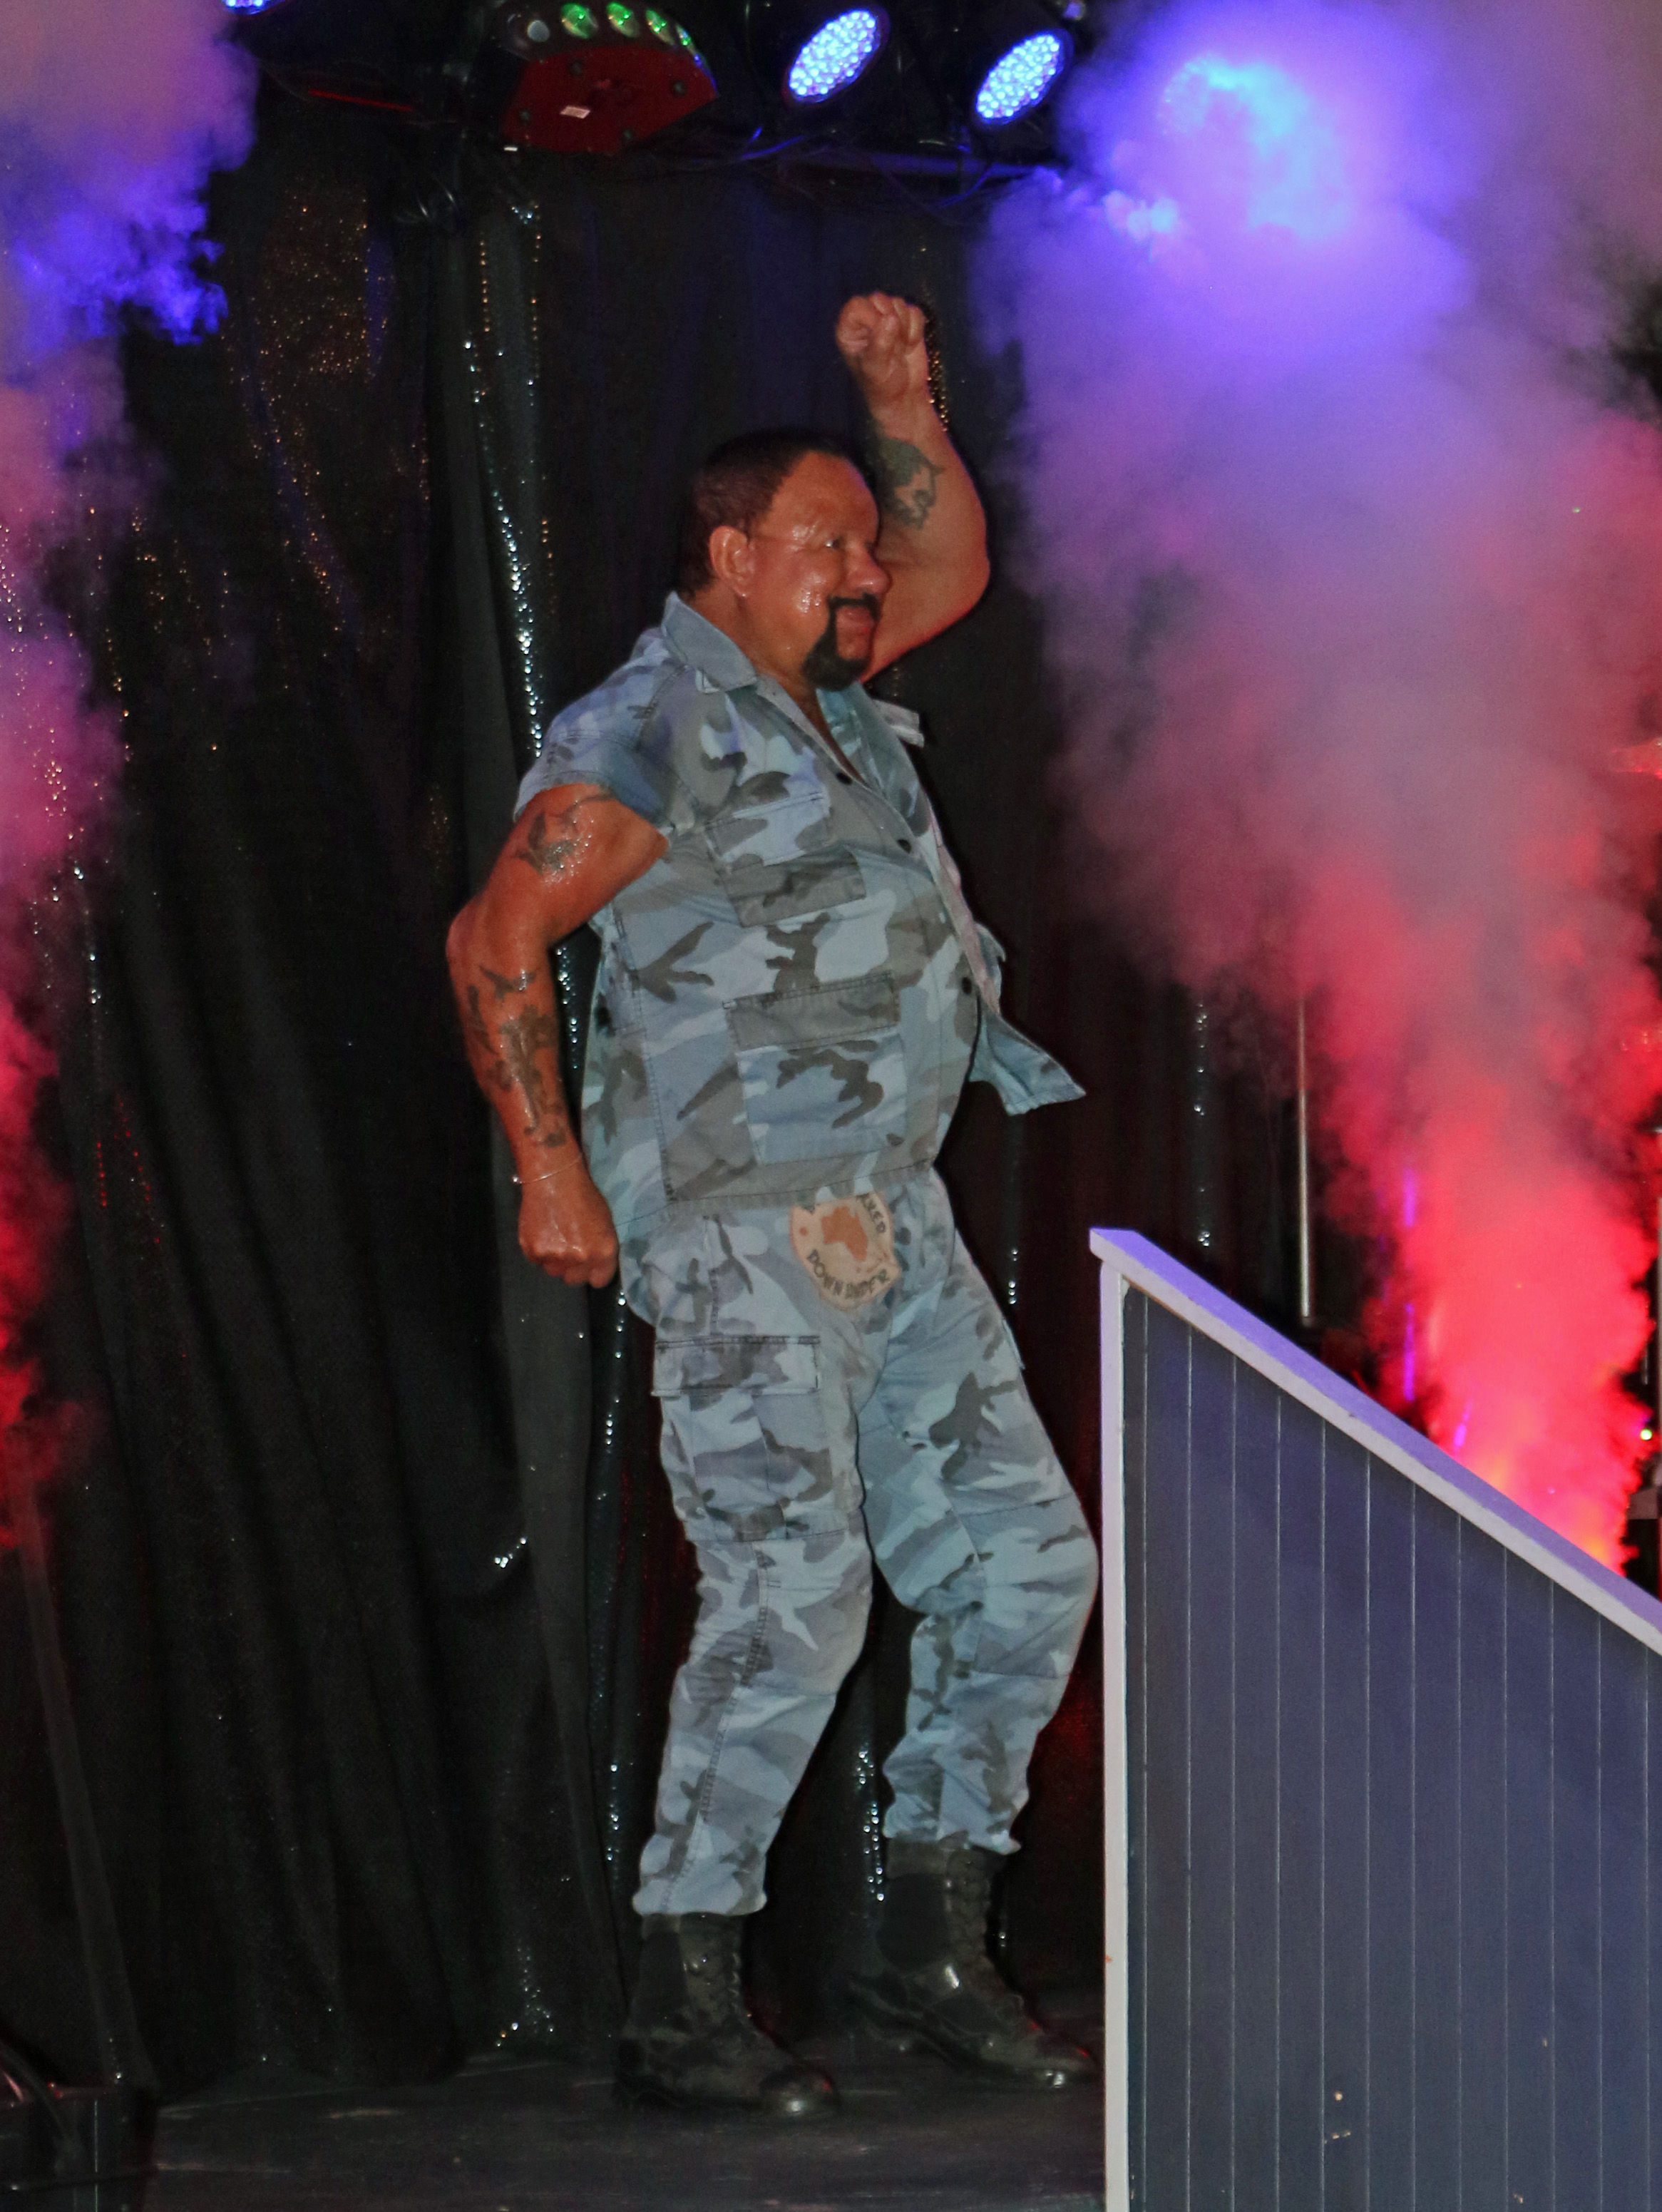 WWE Hall of Famer Bushwhacker Luke enters the arena to be the Princes of the Universe's tag team partner.